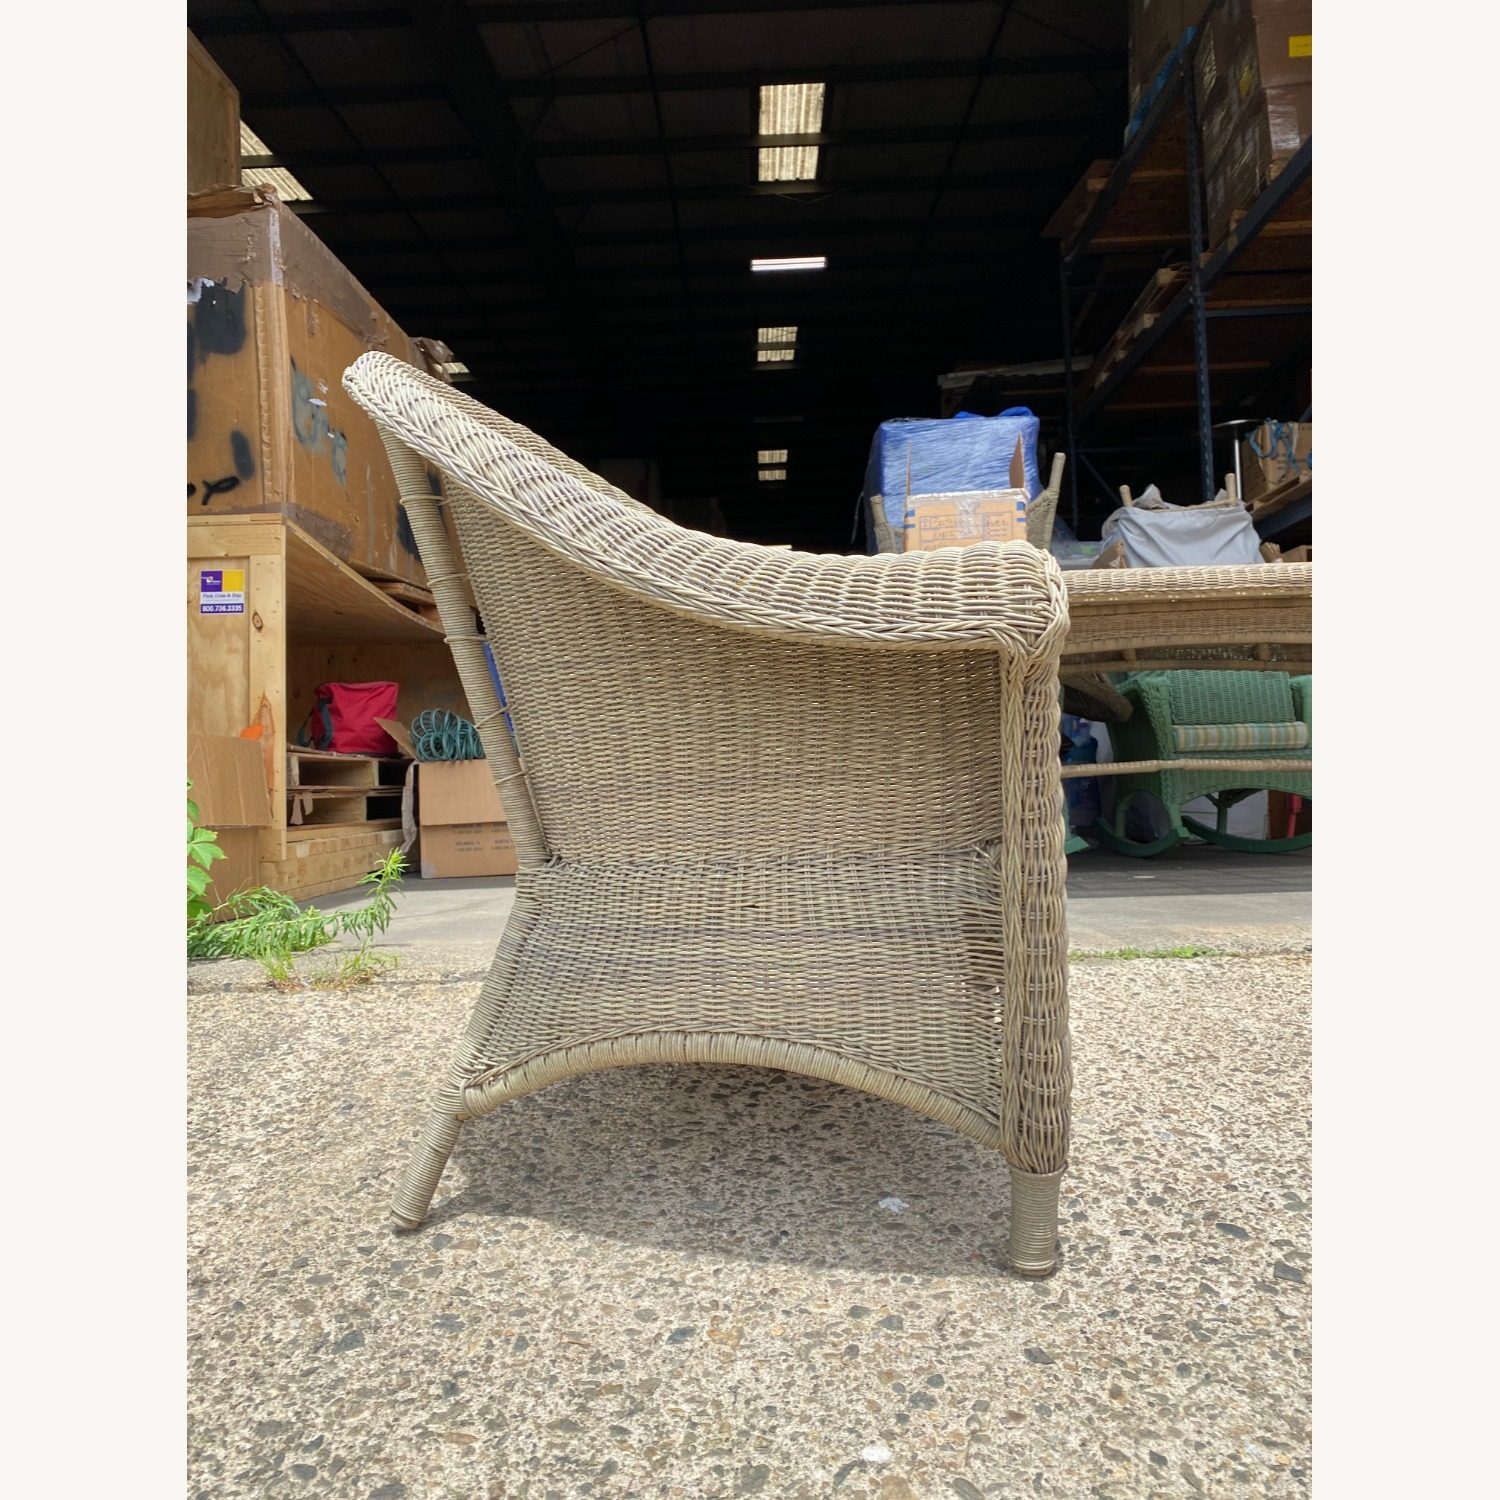 Two Restoration Hardware Outdoor Lounge Chairs - image-1